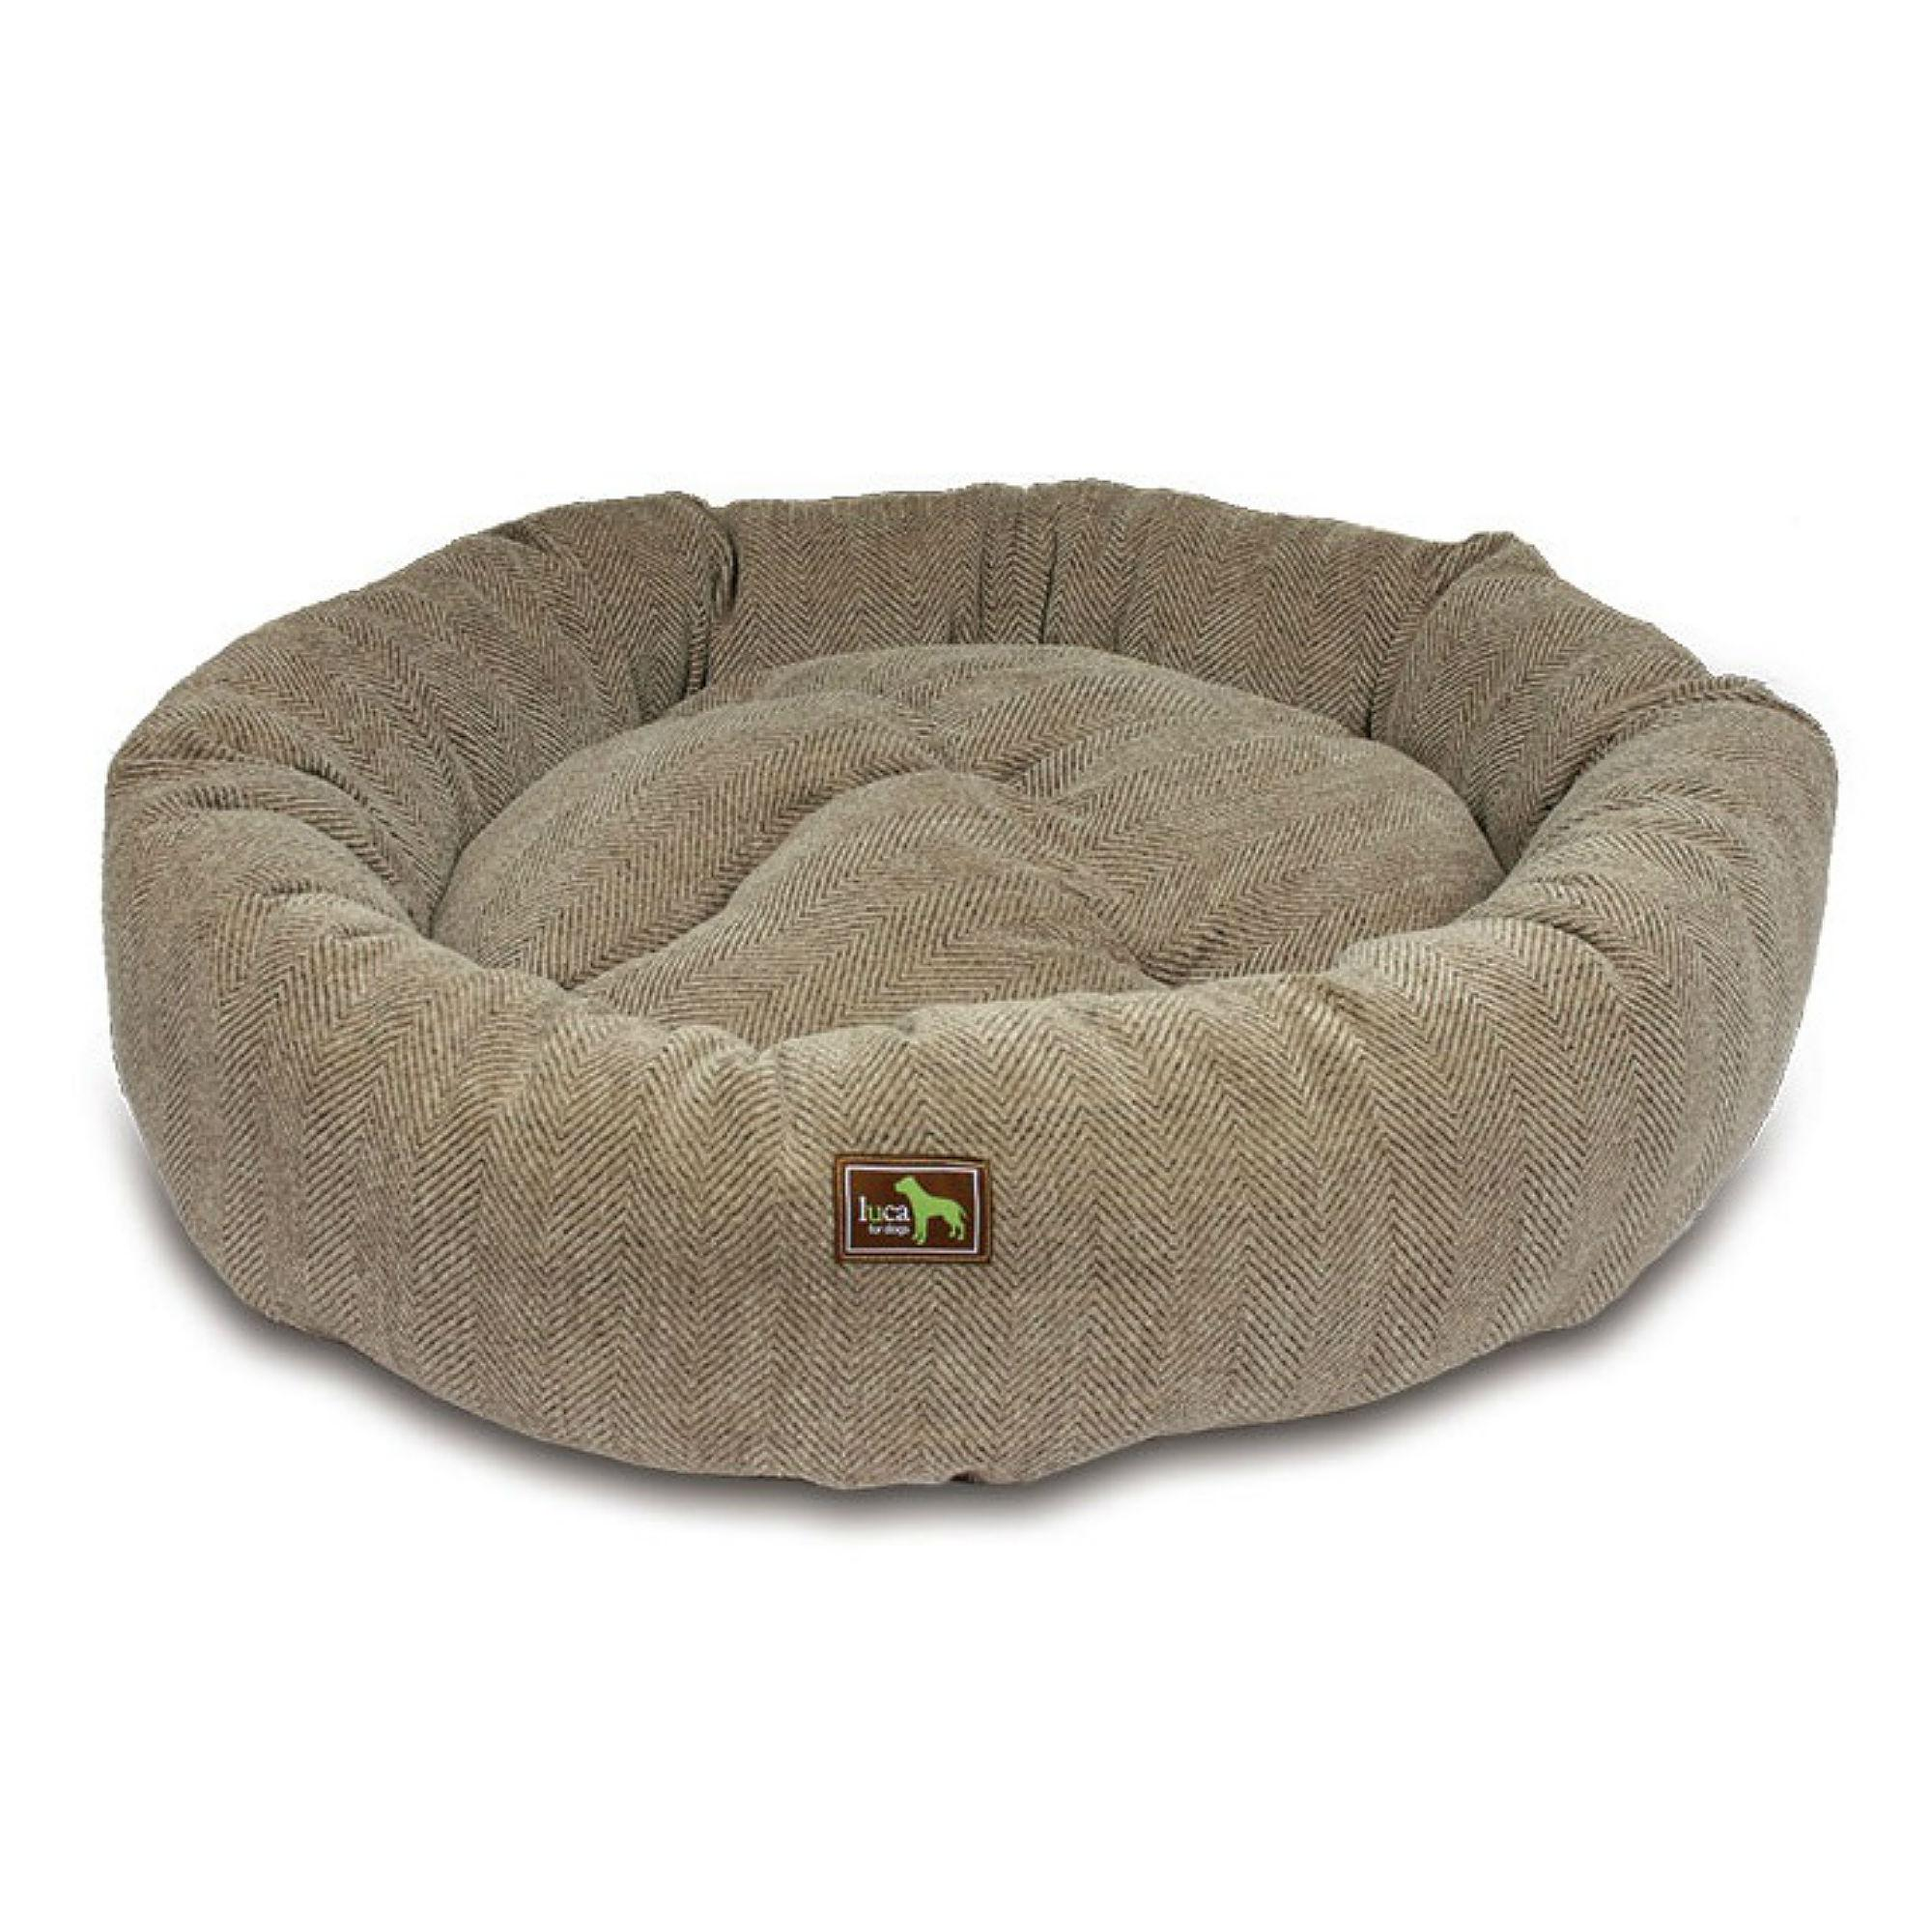 Luca Nest Dog Bed - Cobblestone Tweed